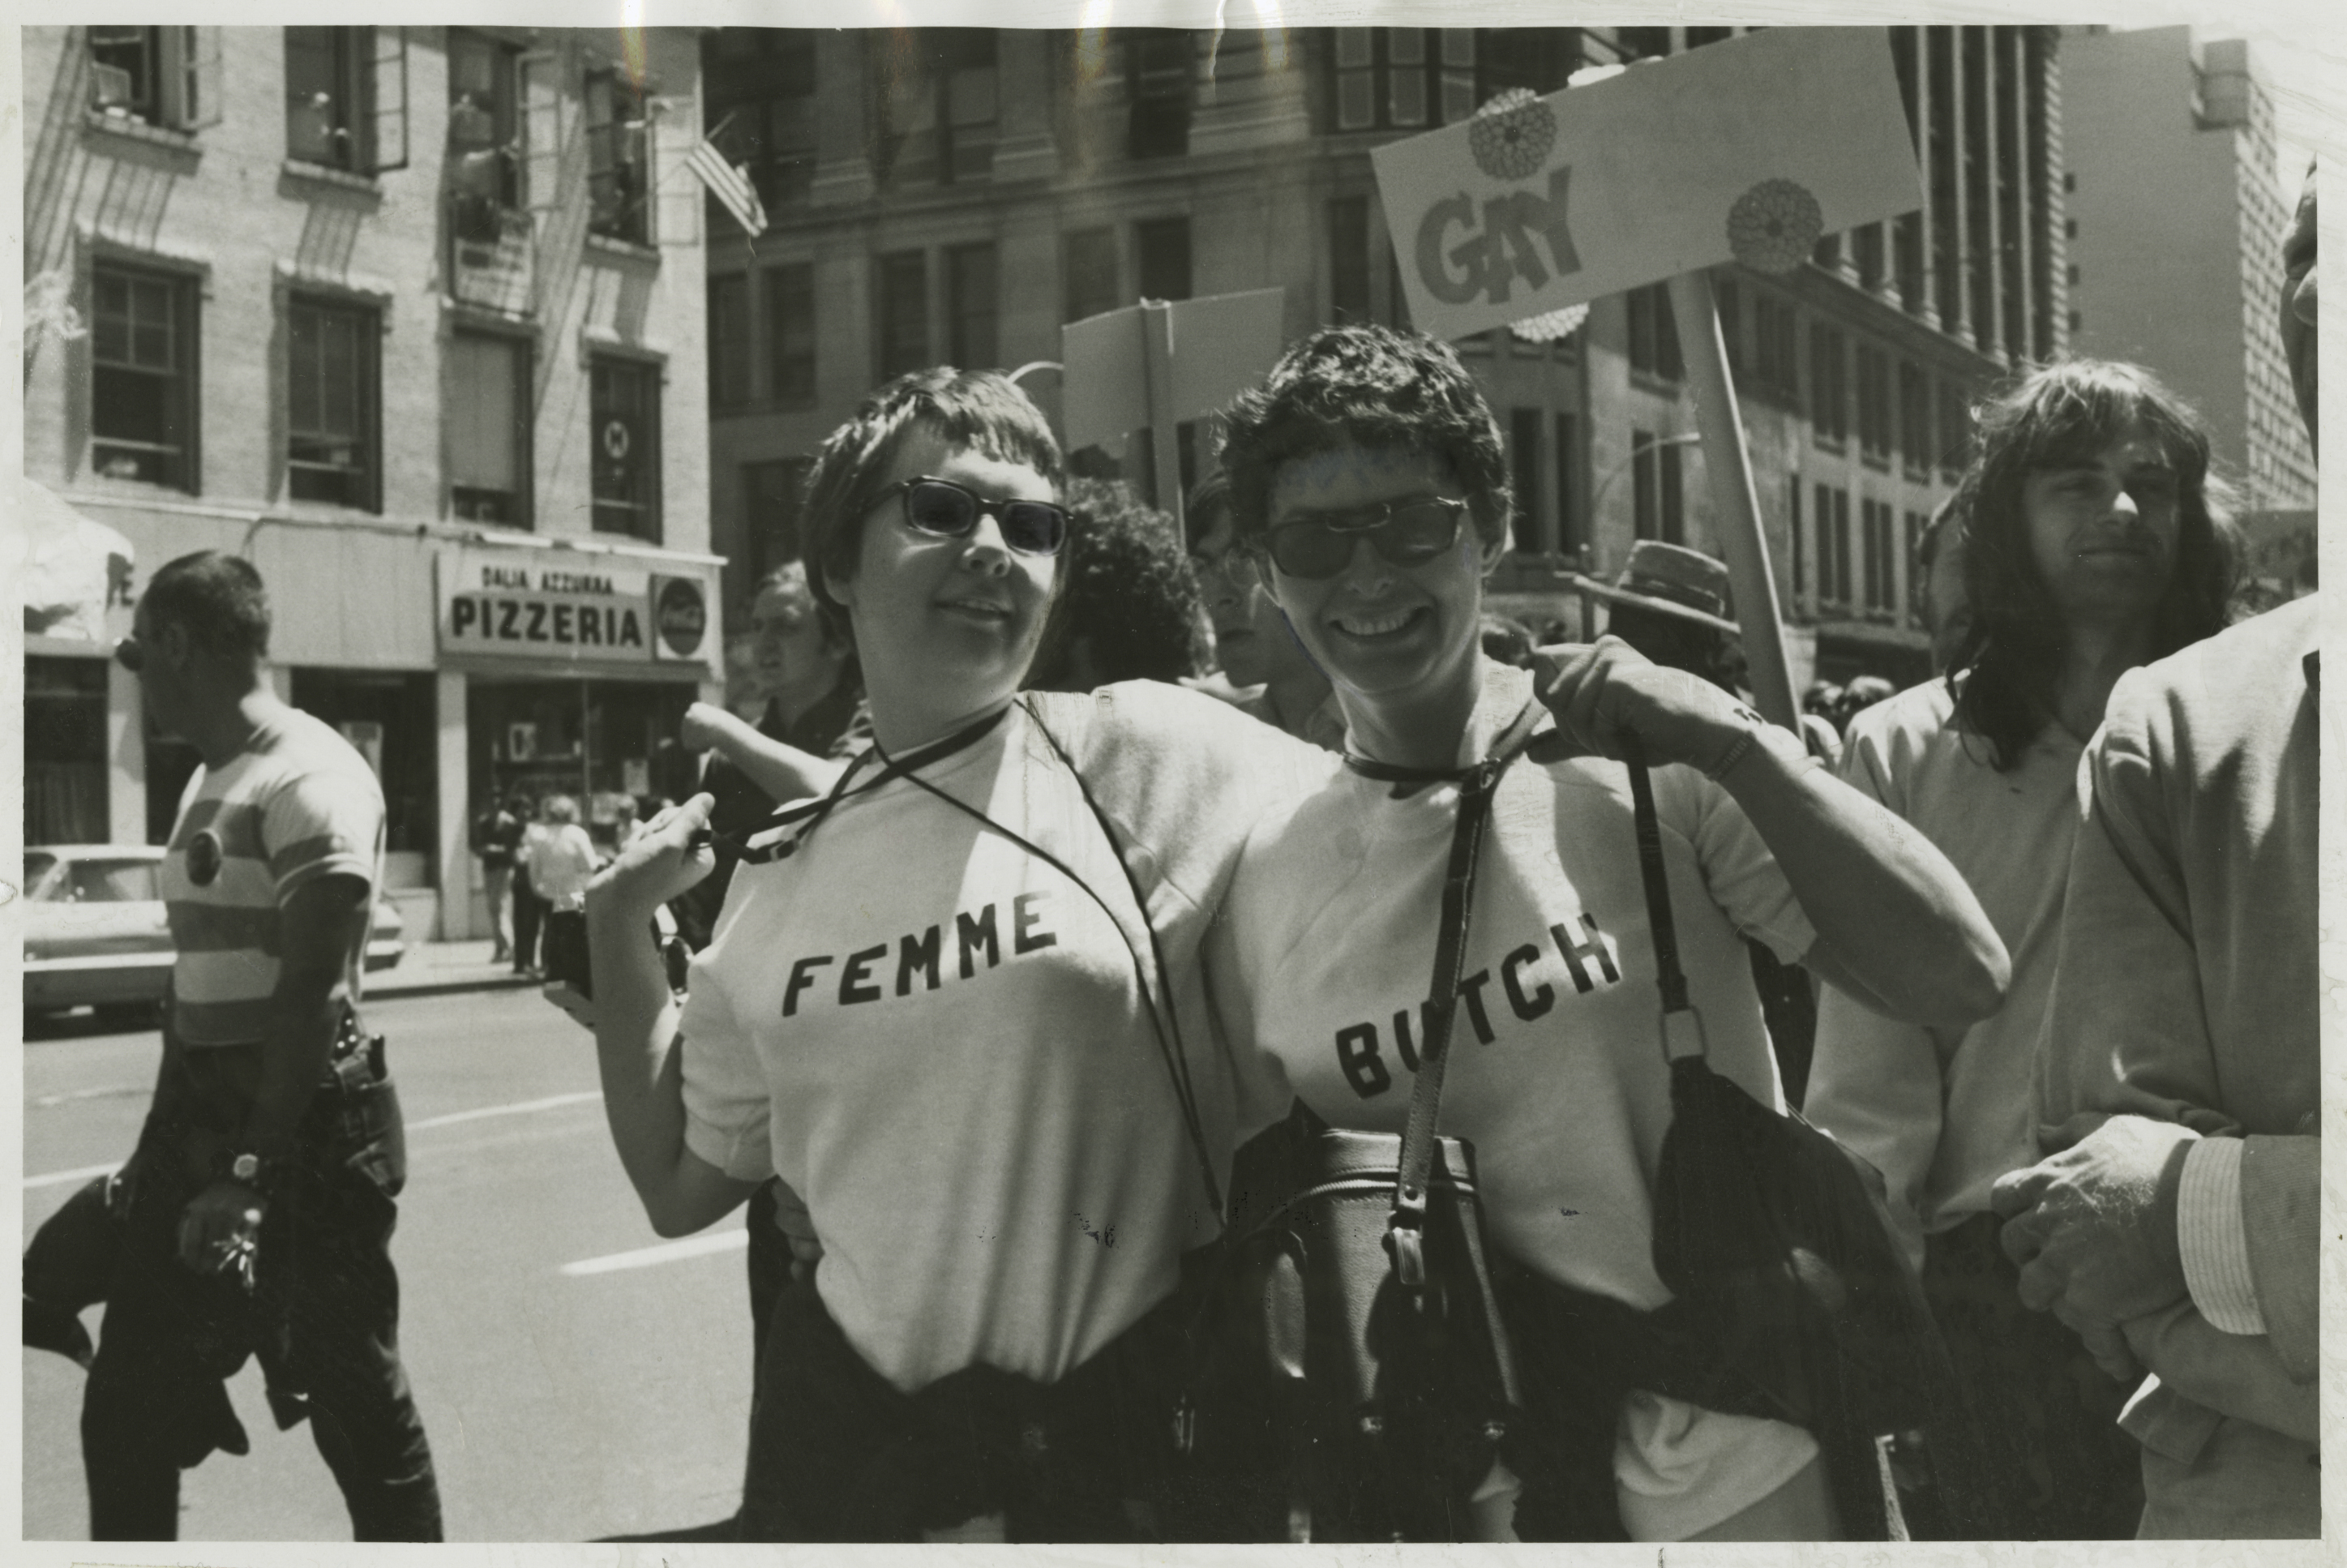 NYC Pride March over the years